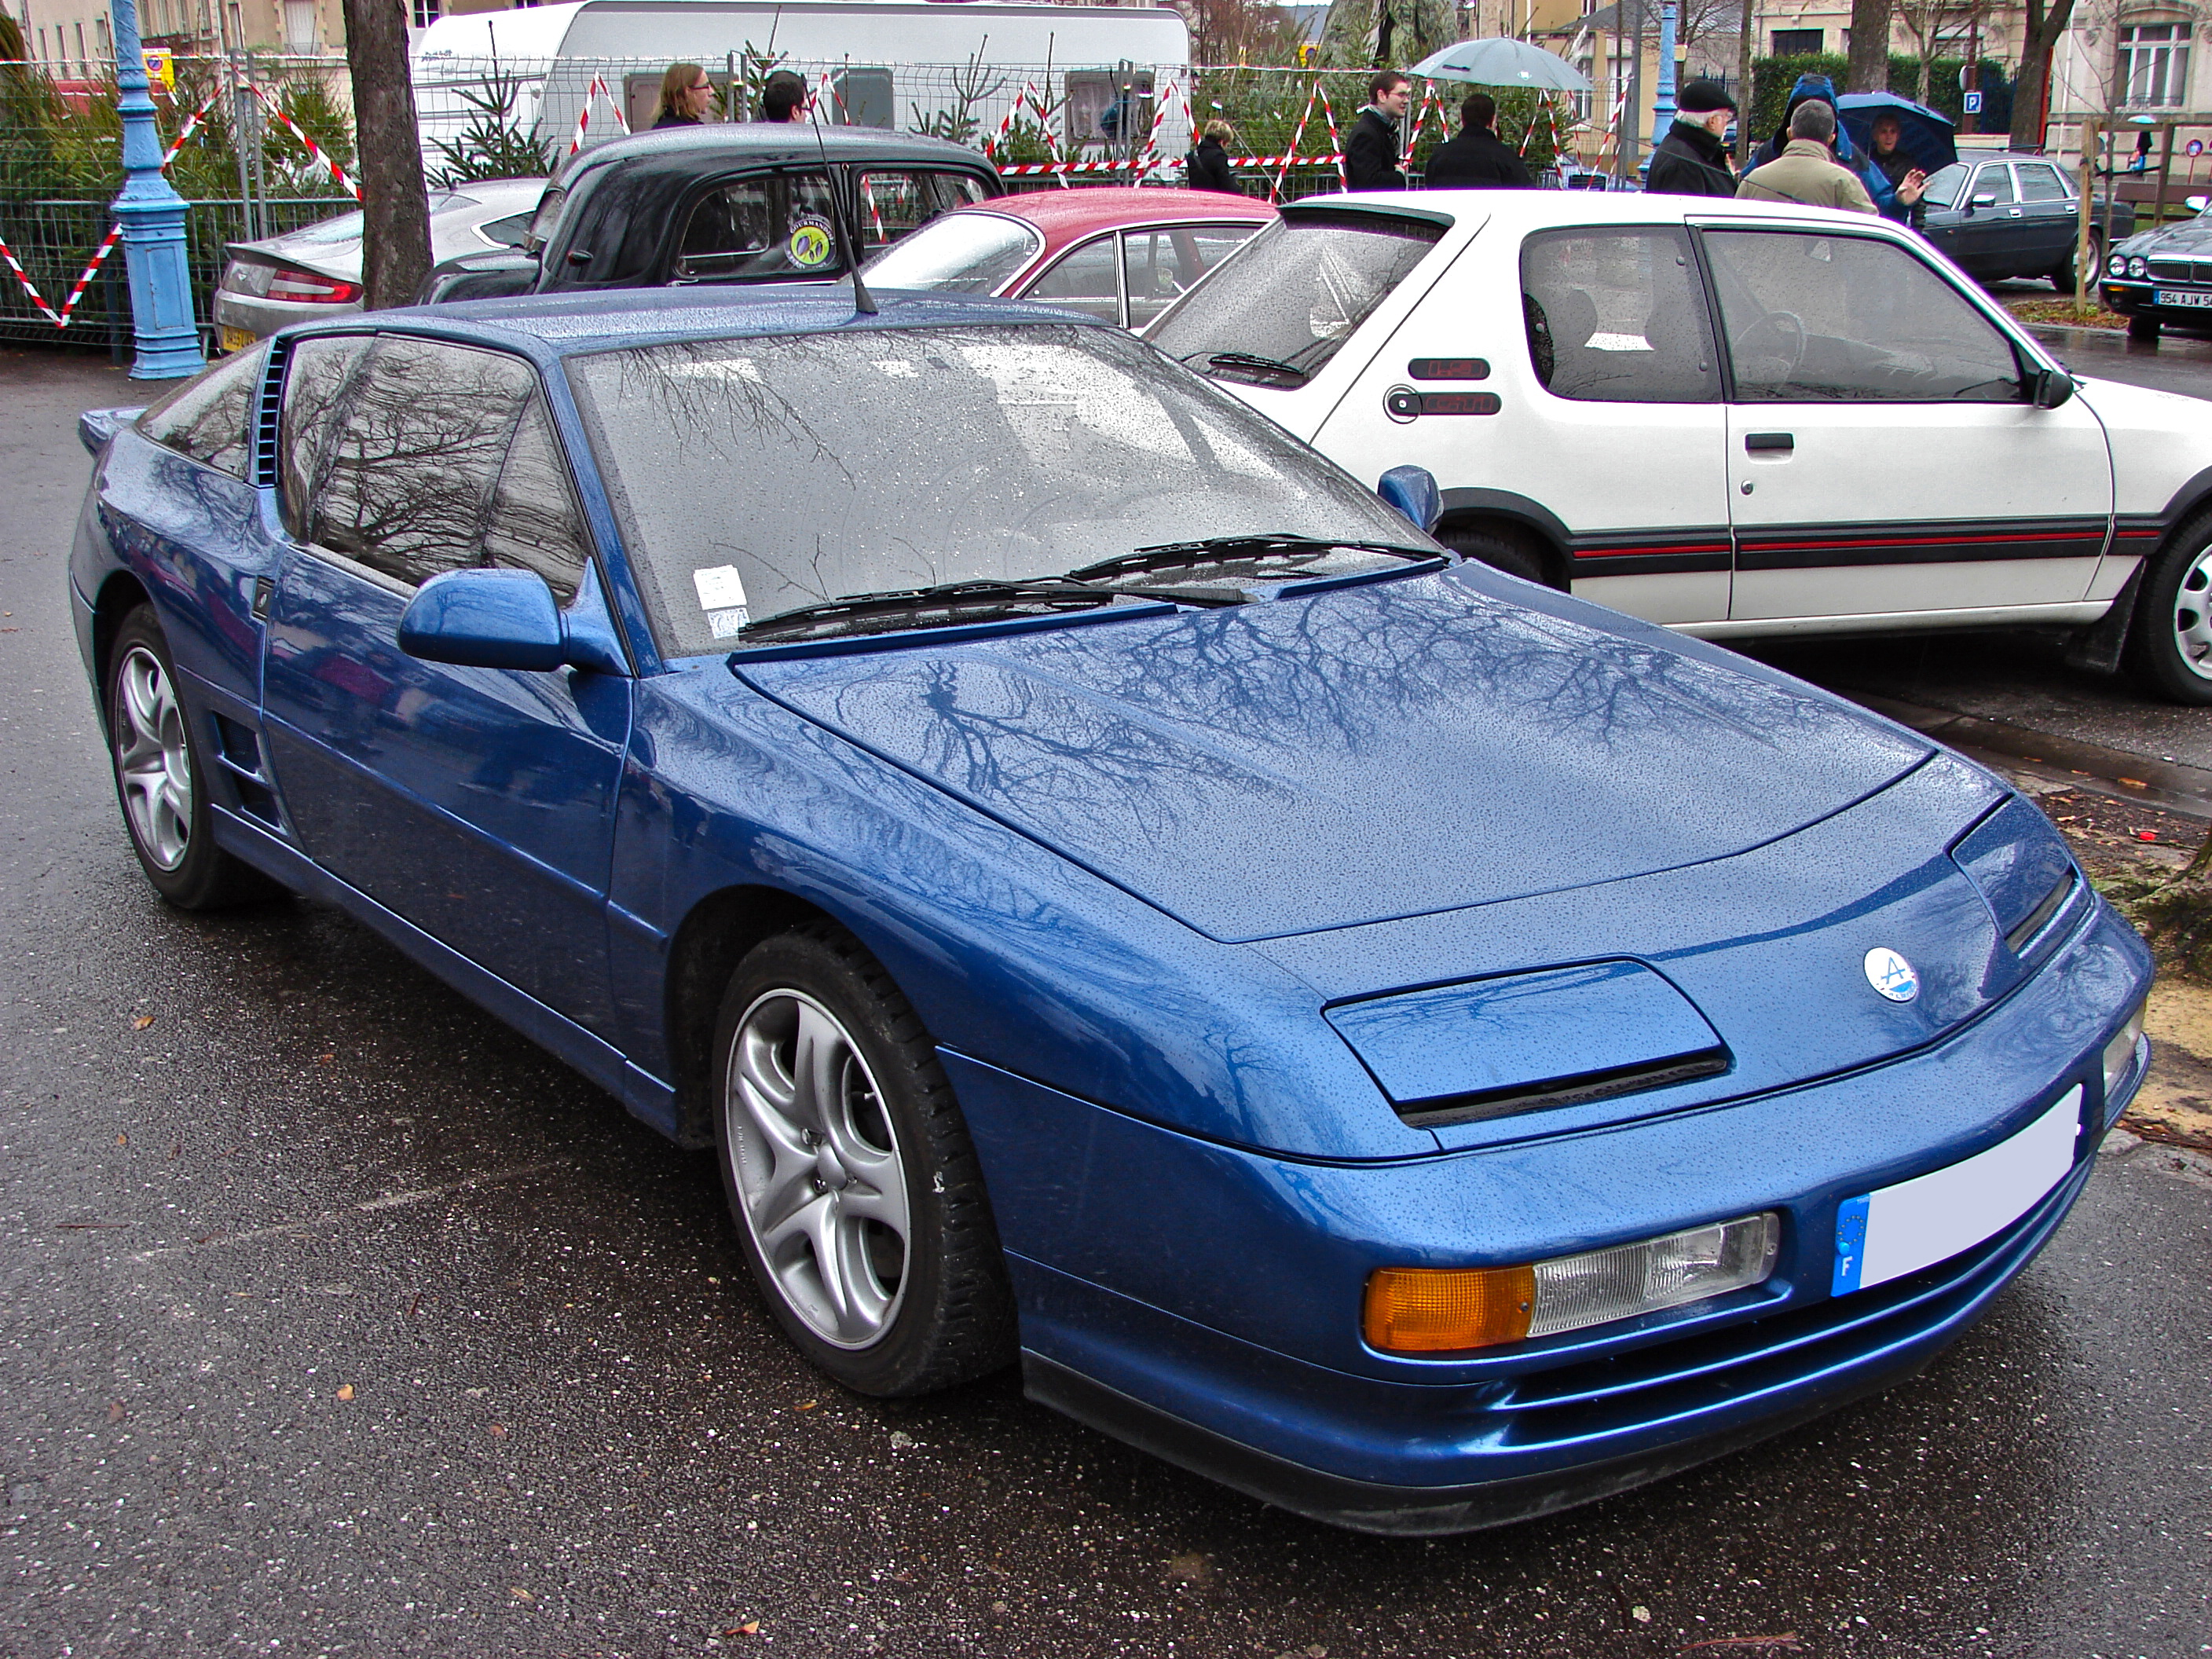 file renault alpine a610 turbo flickr alexandre pr wikimedia commons. Black Bedroom Furniture Sets. Home Design Ideas